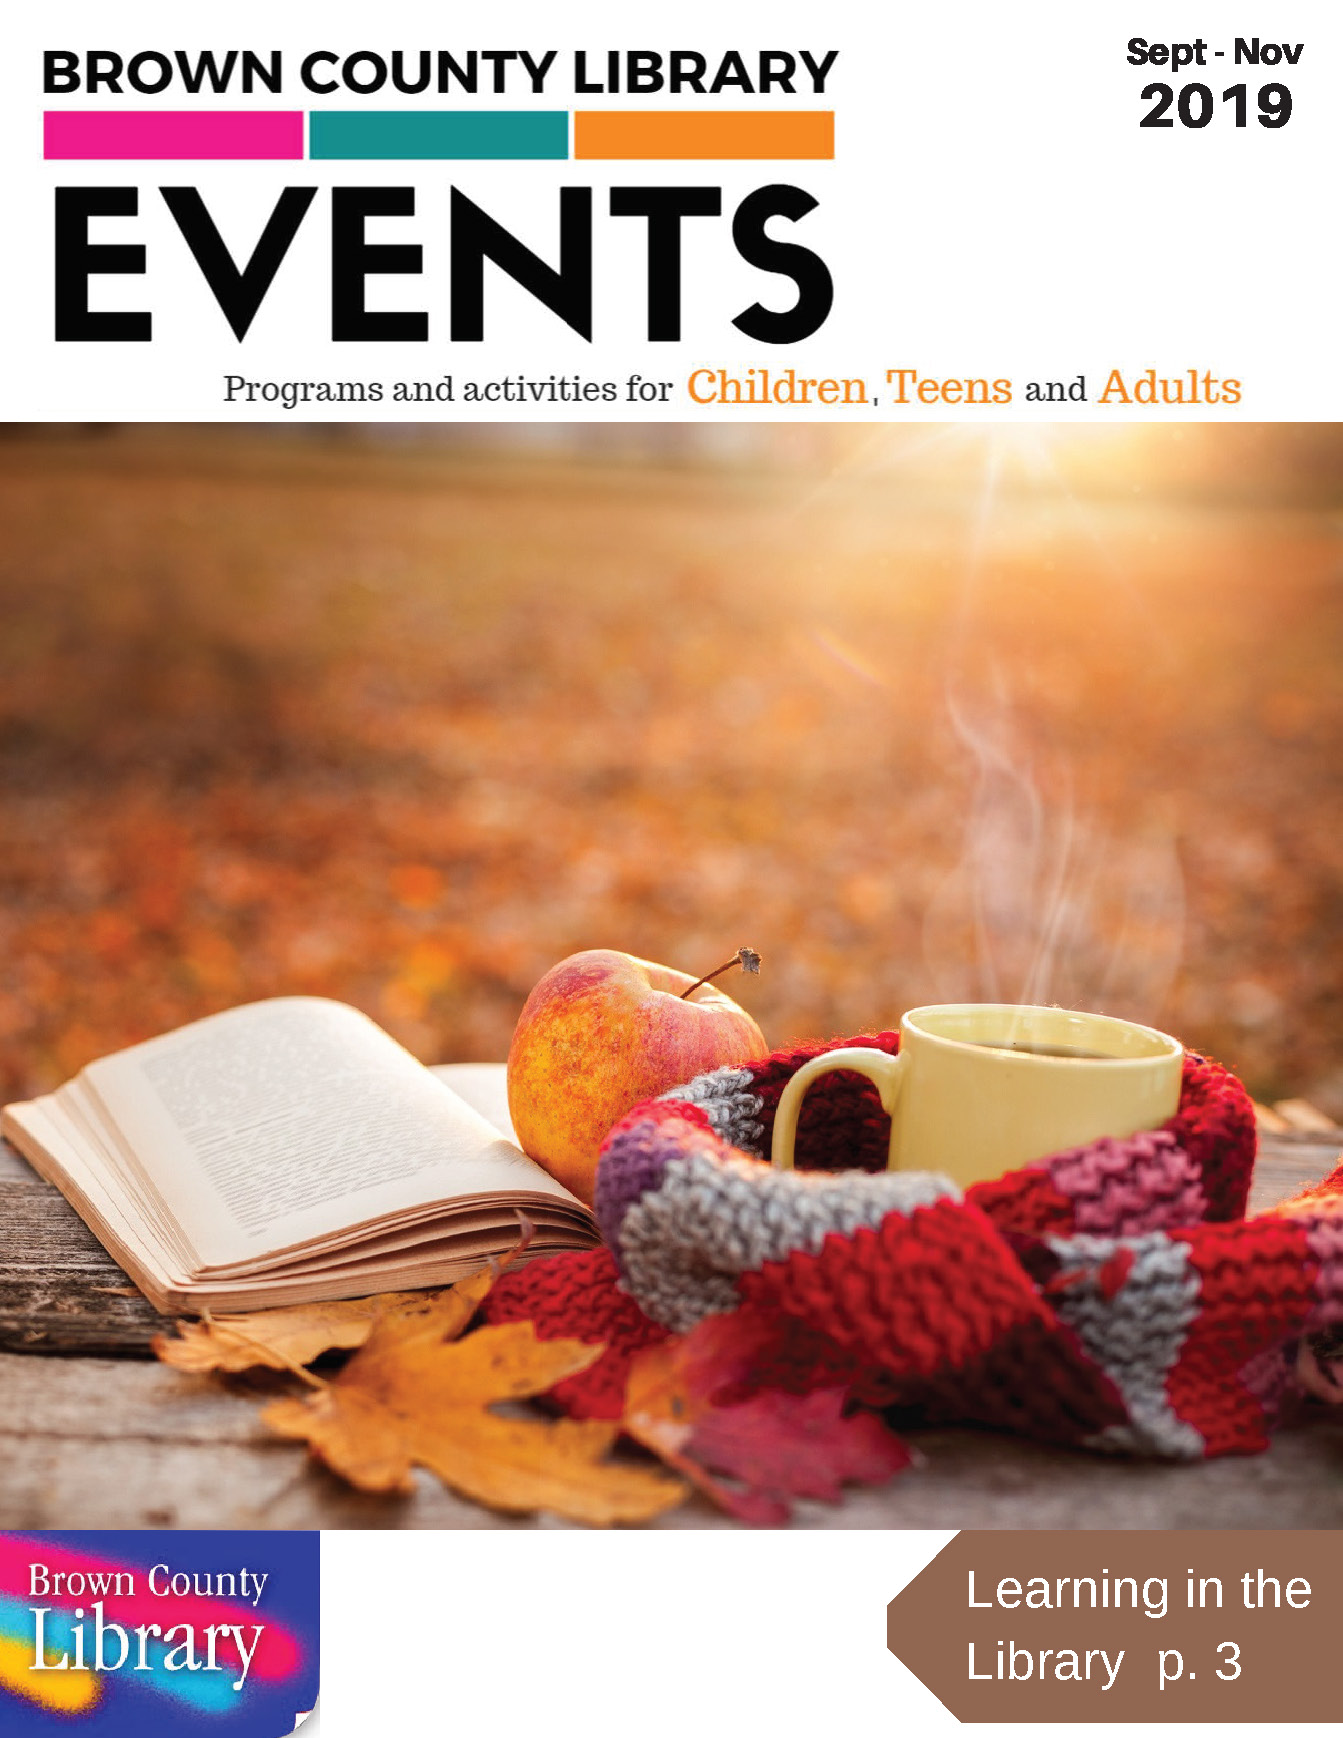 Library Calendar of Events